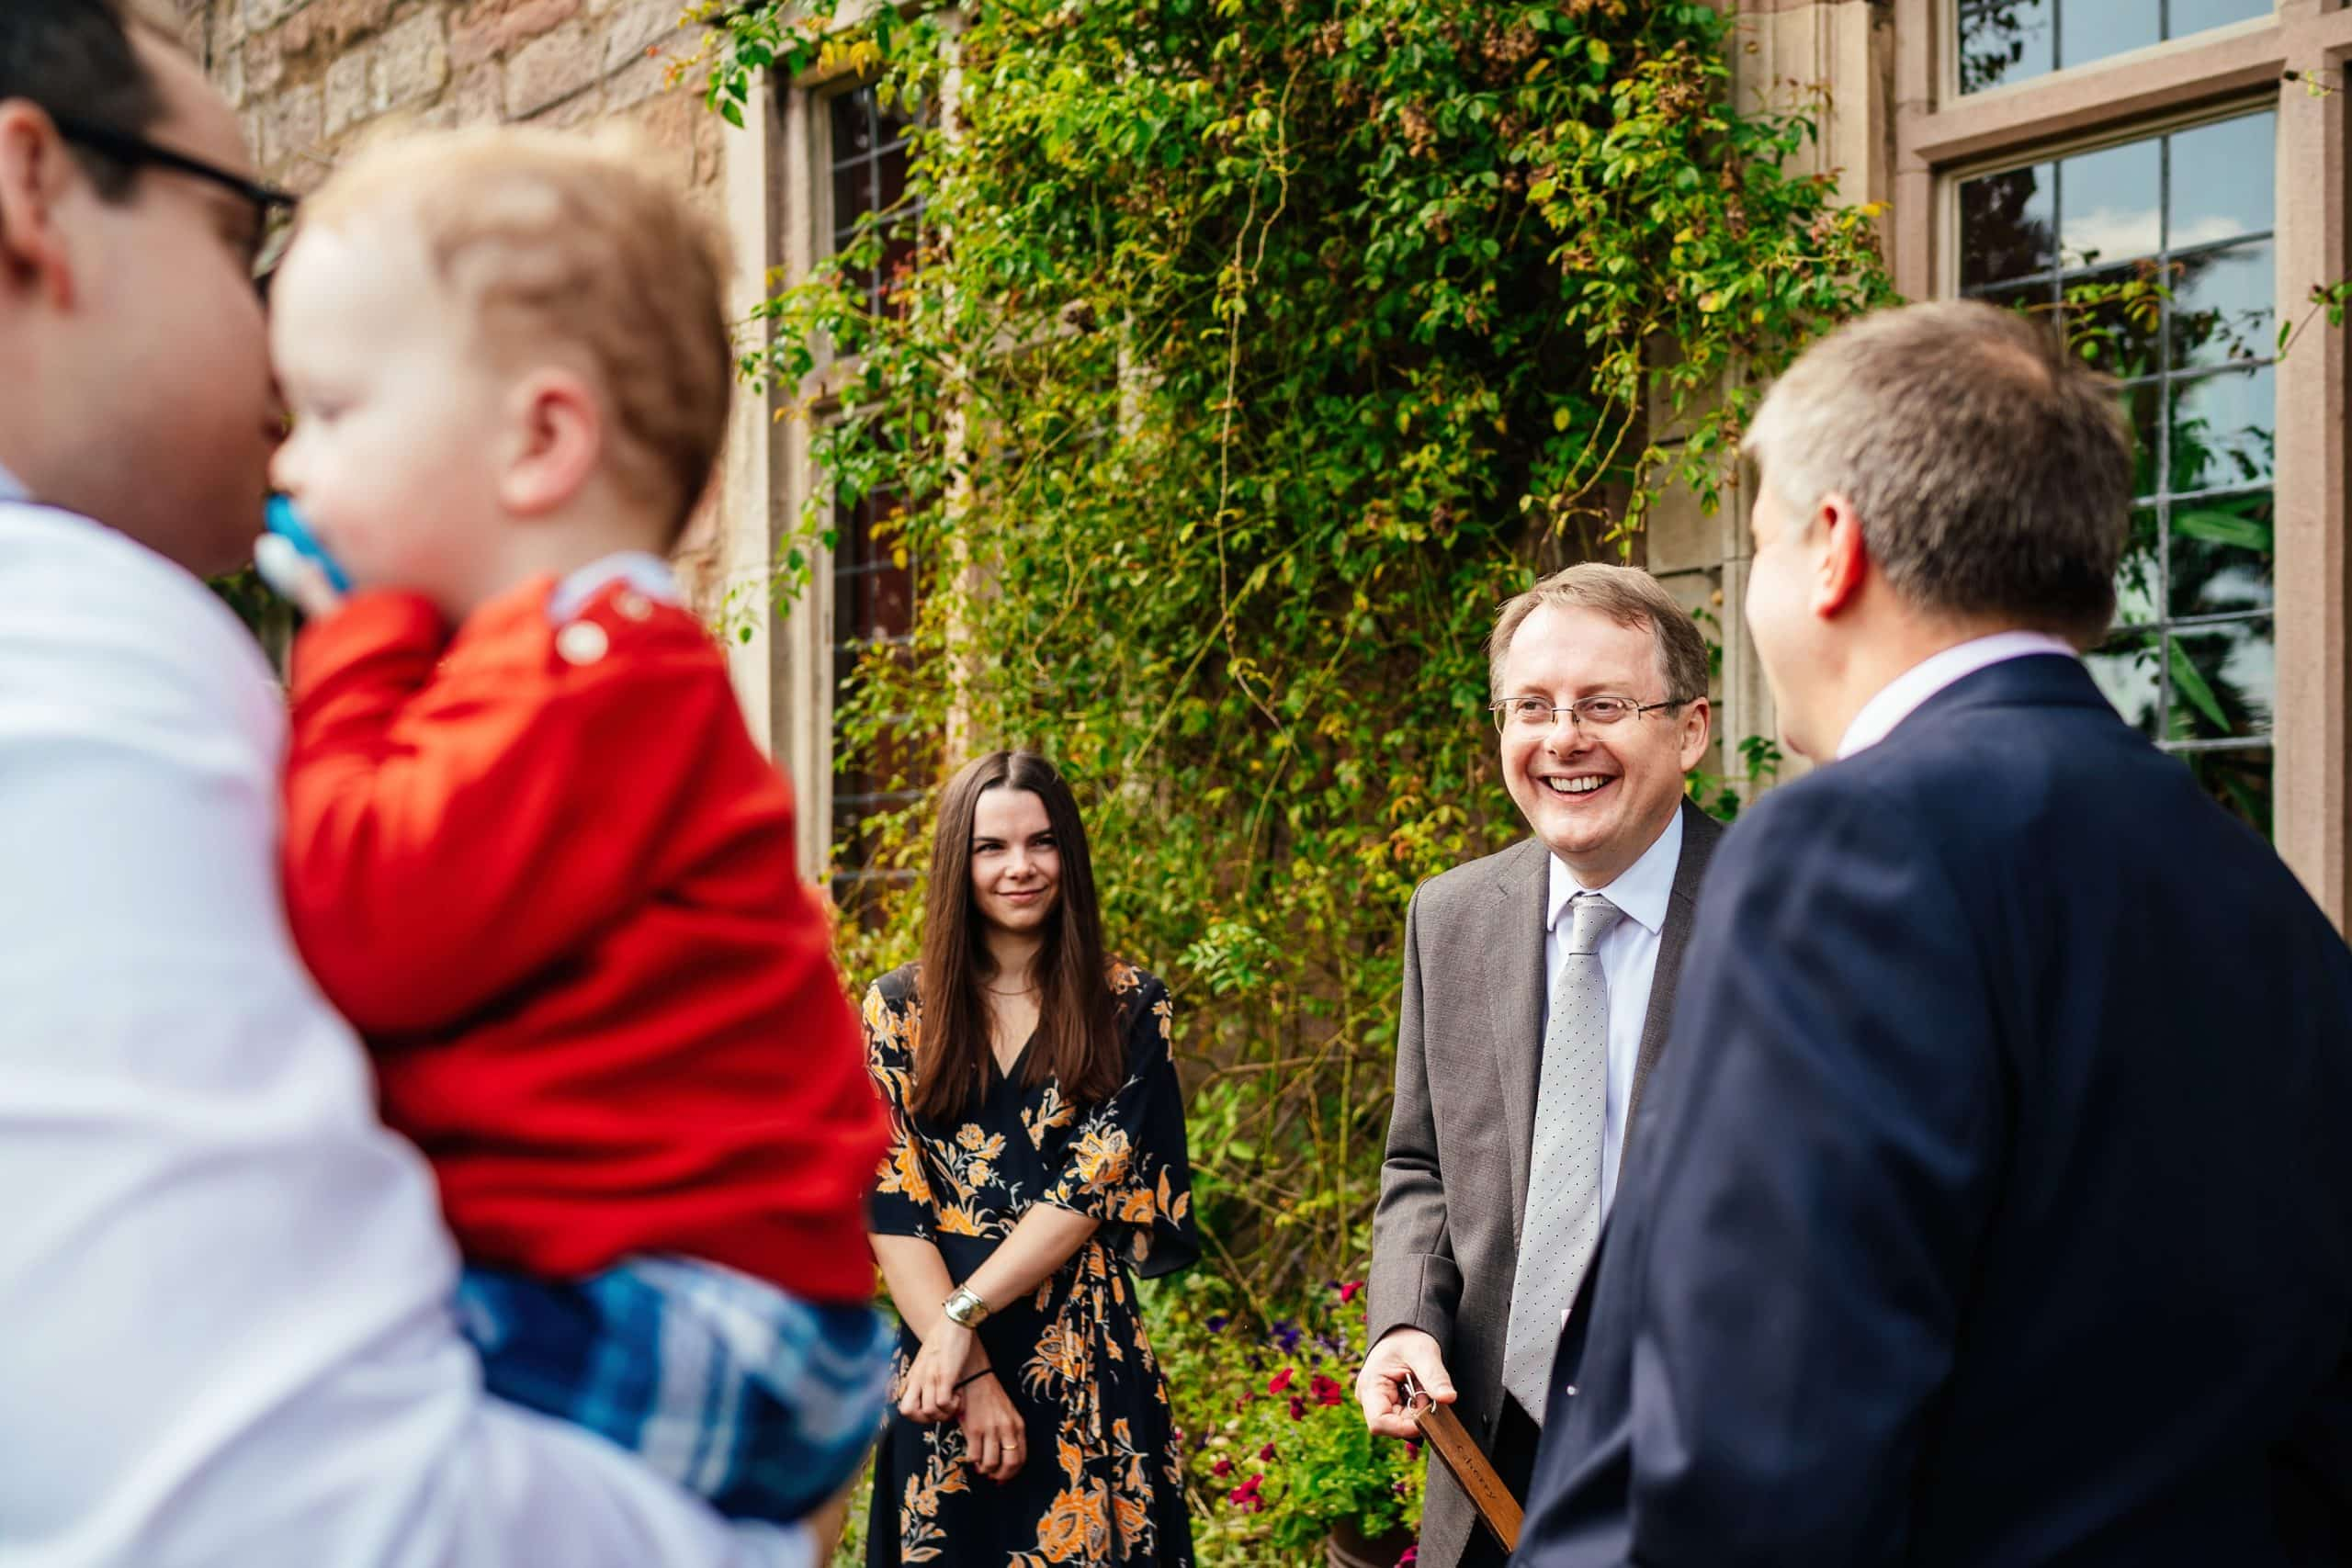 Askham-Hall-Wedding-Photography-003